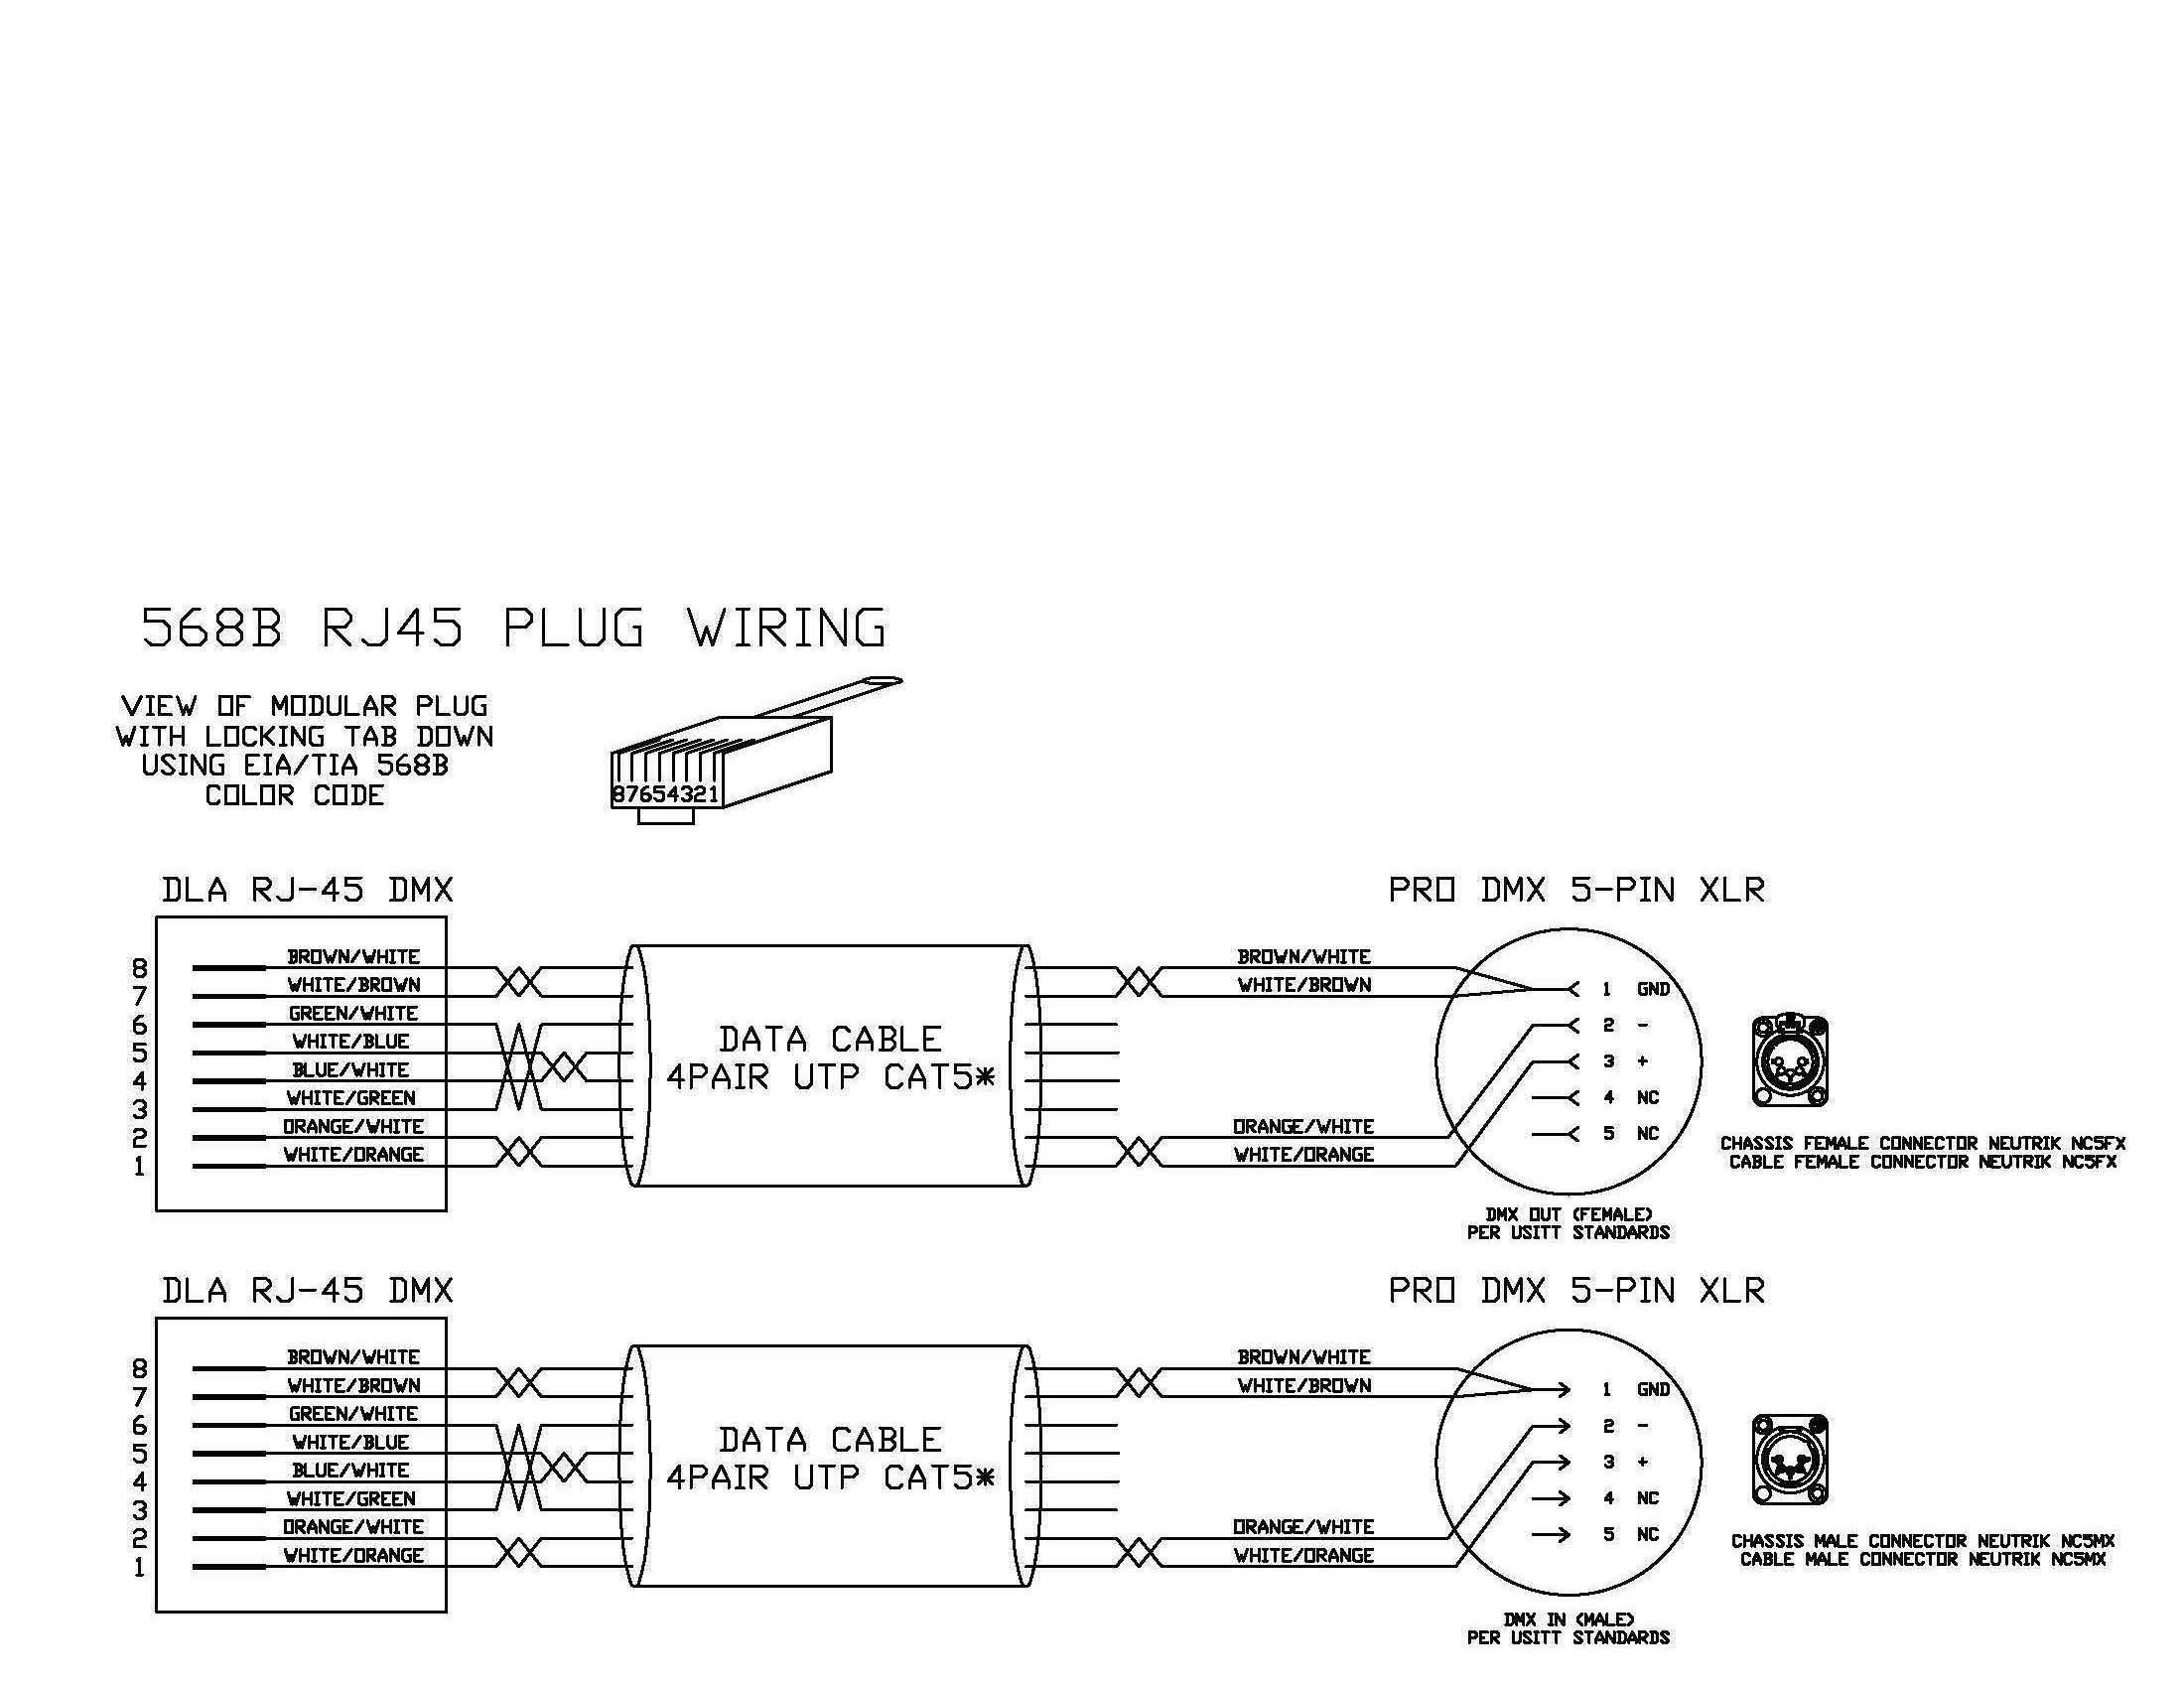 e975ddb6a839e630c21b81db05ca4fa6 xlr to rj45 wiring diagram xlr electrical wiring diagrams what color is l on a wiring diagram at soozxer.org